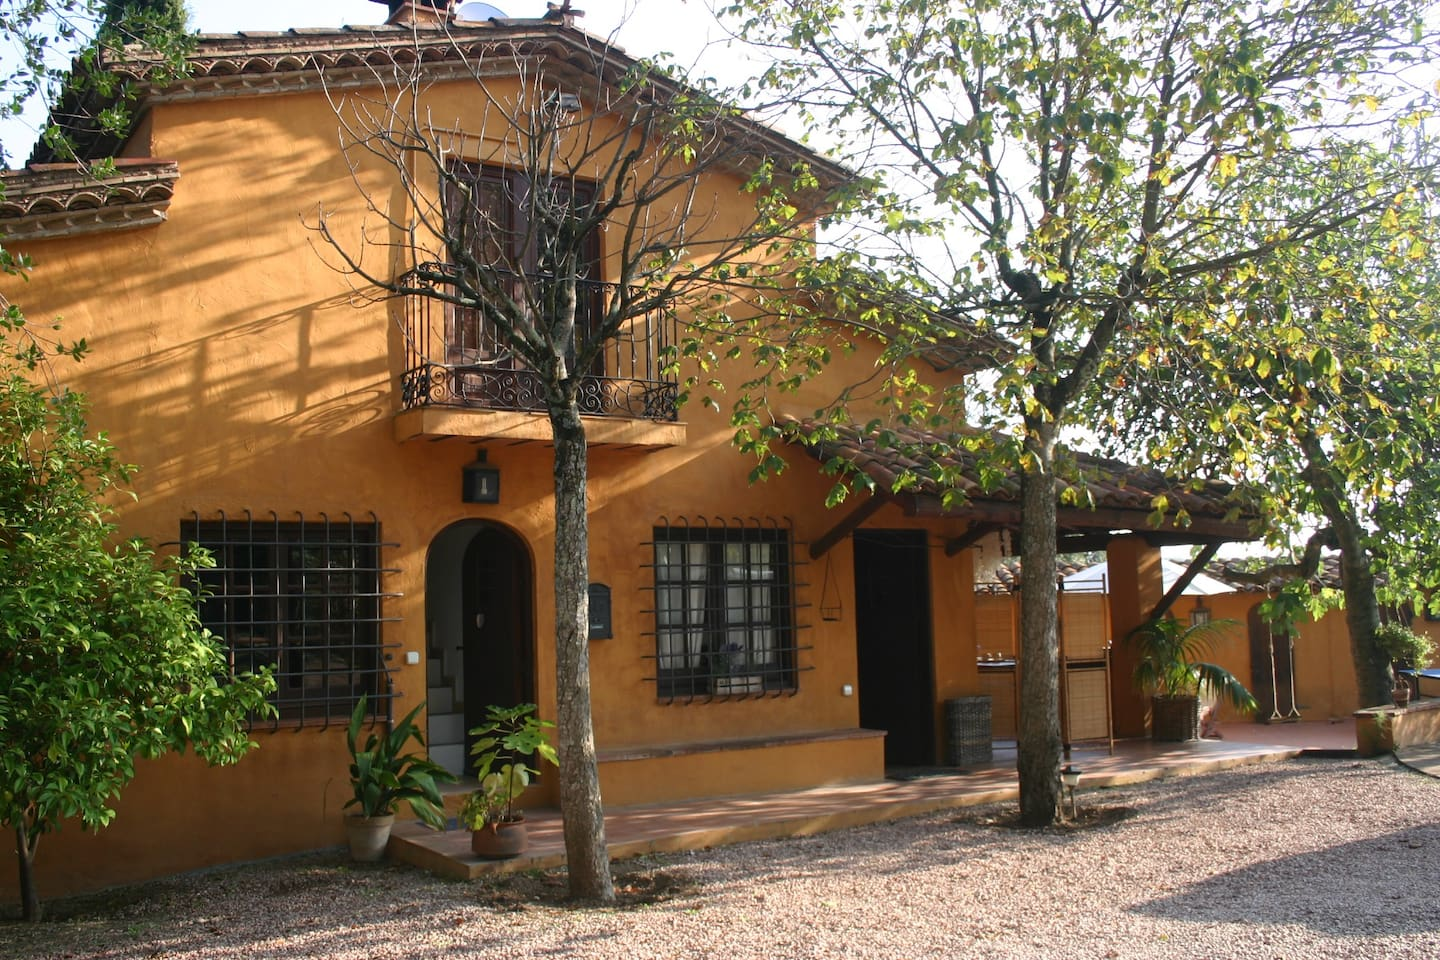 The Orange Cottage